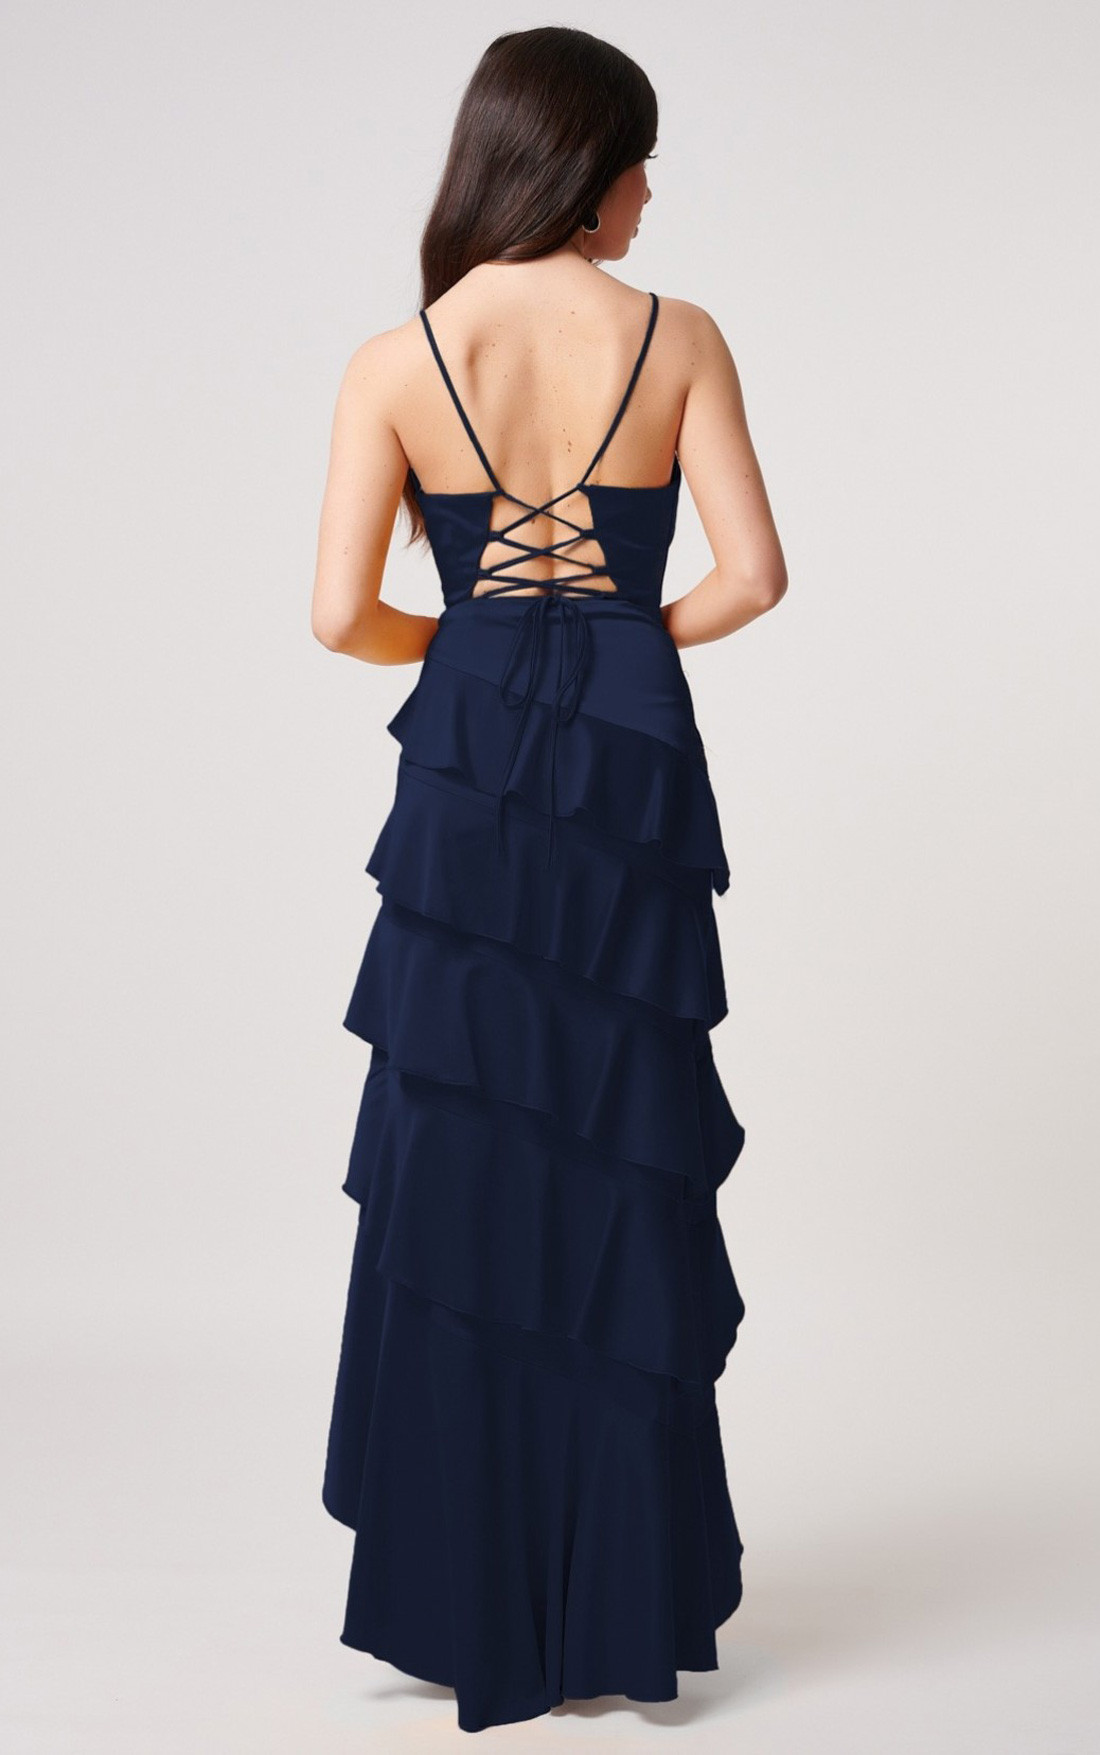 Forever Unique - Kalene Blue Satin Maxi Dress With Tiered Ruffle Detailing (MN201002)